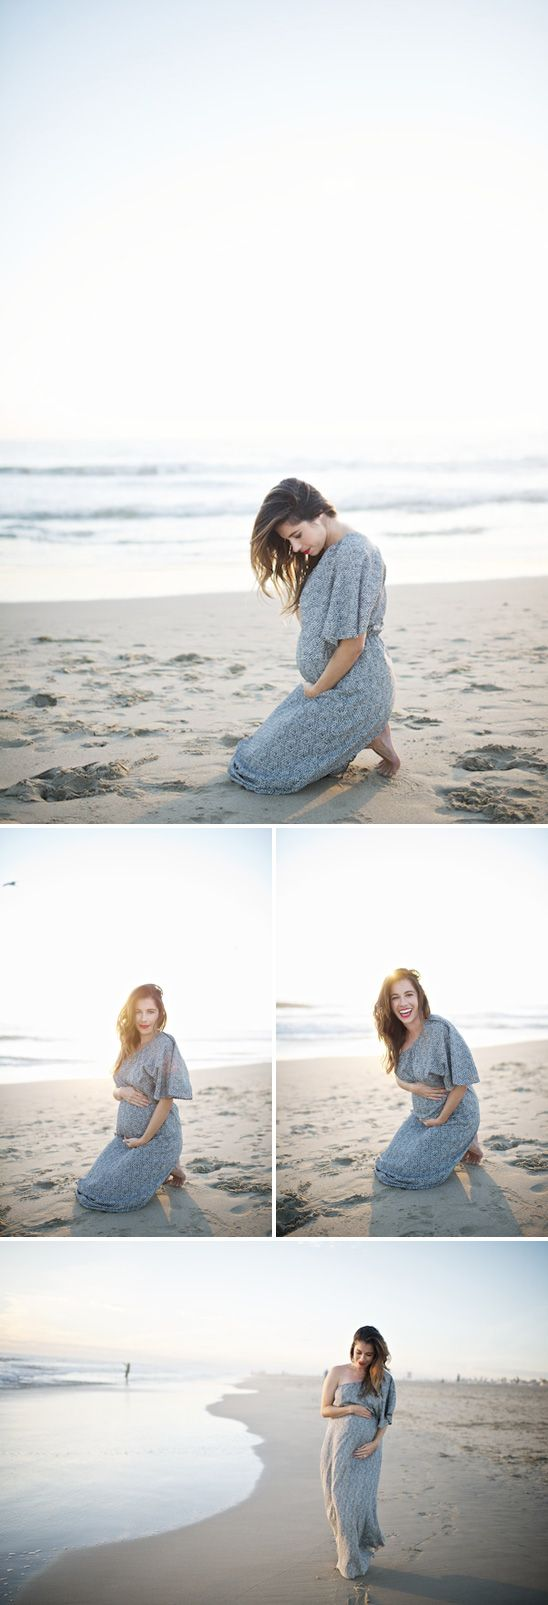 LOVE. I would die to have pictures like this at the beach. Hate the dress though..looks like a hospital gown.